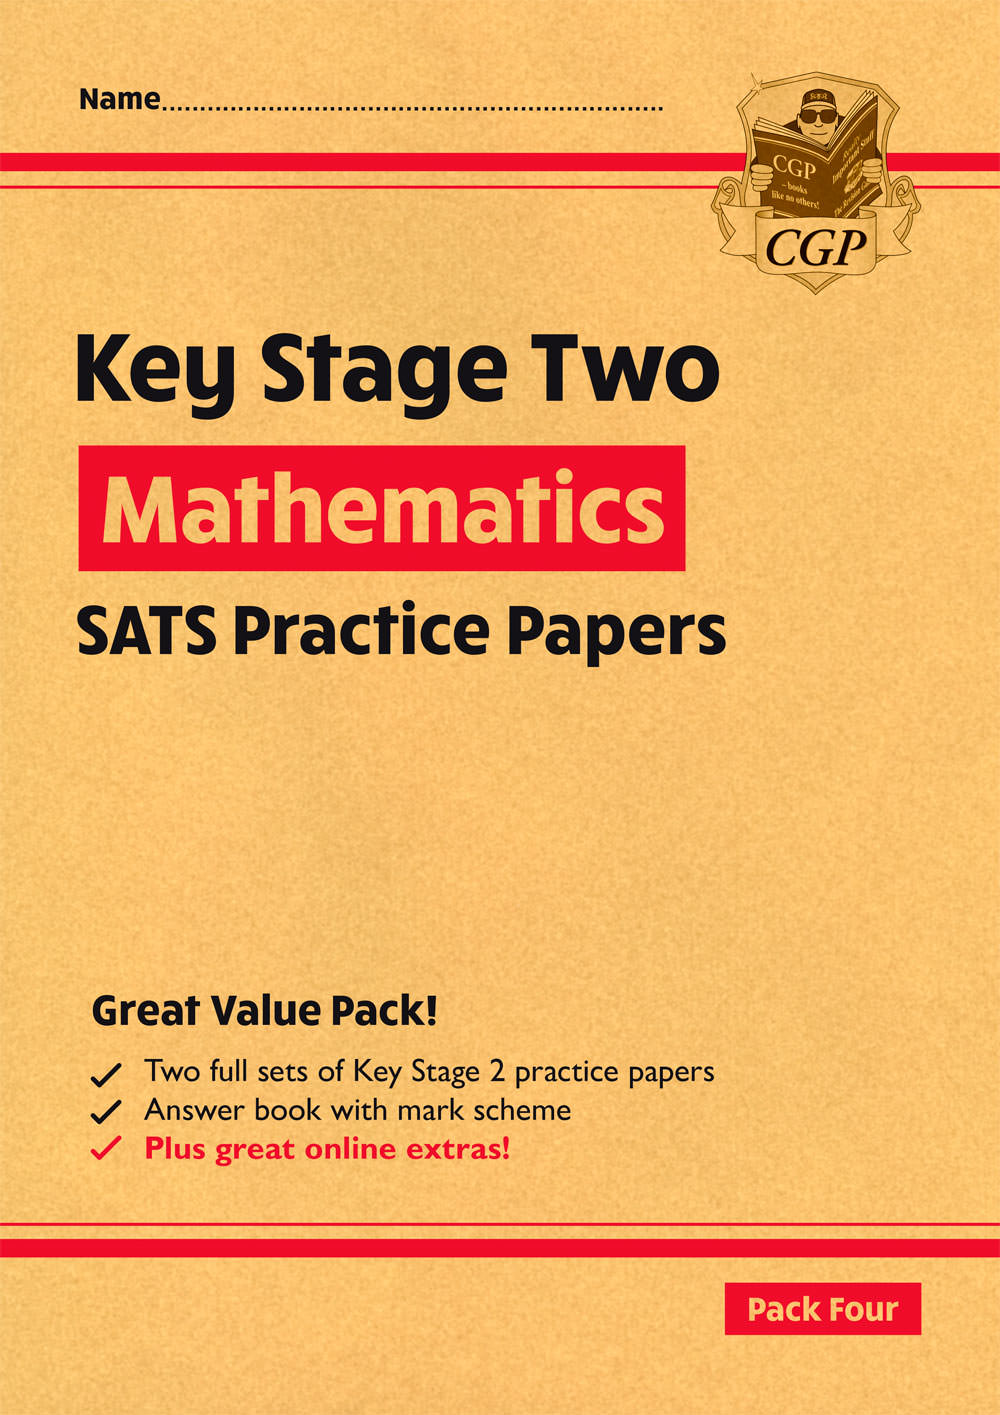 MHRP28 - New KS2 Maths SATS Practice Papers: Pack 4 - for the 2021 tests (with free Online Extras)